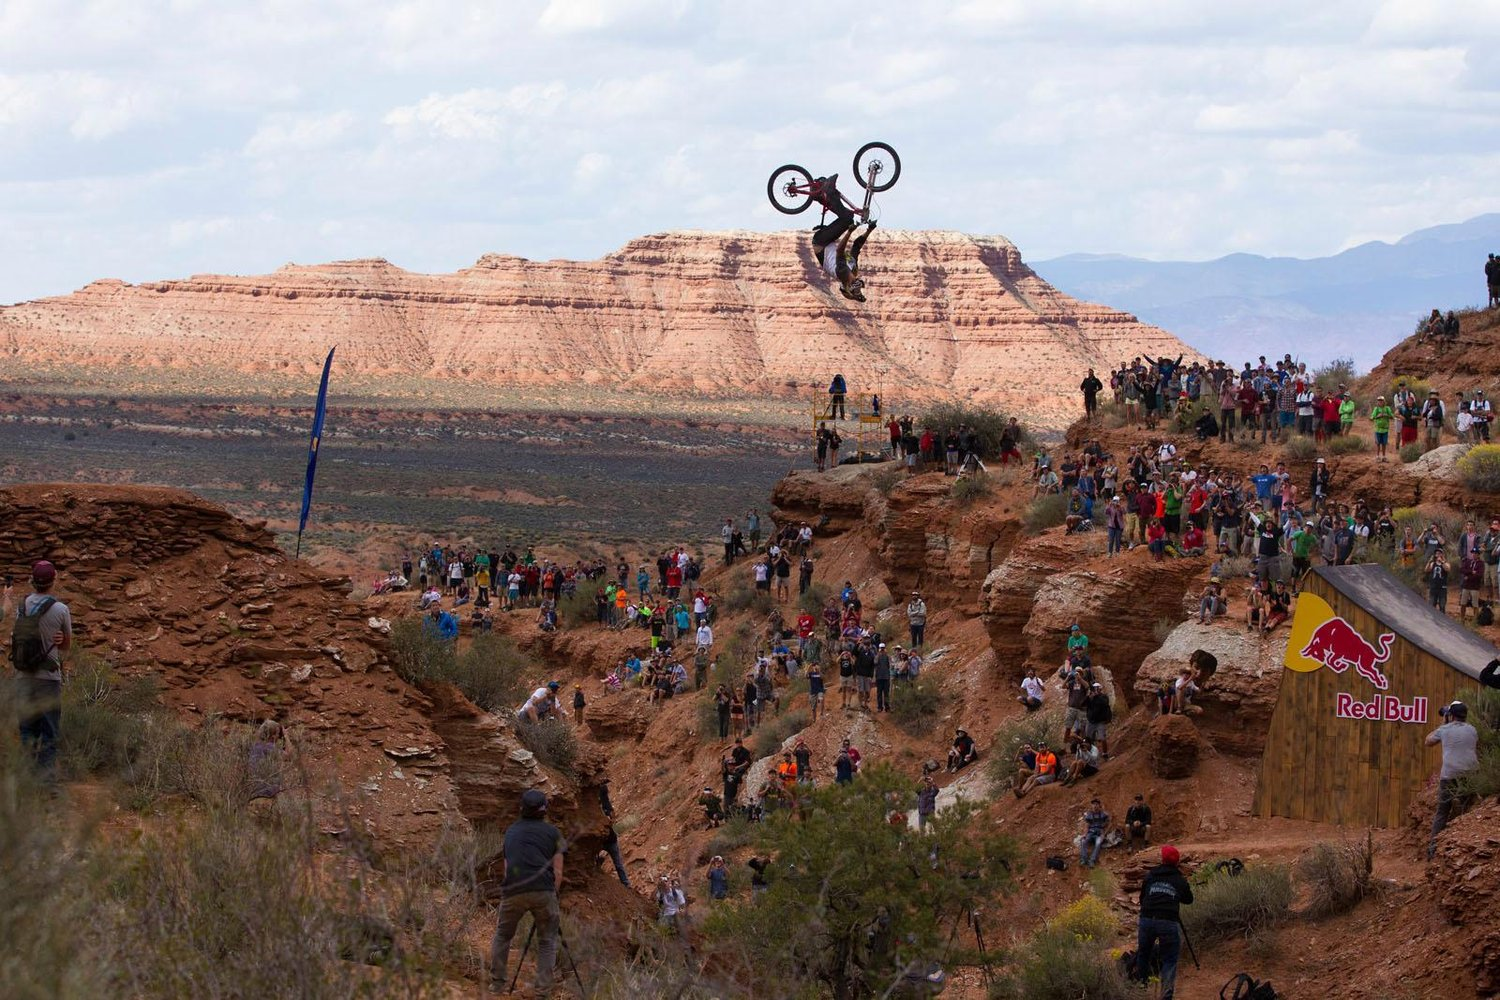 Kelly McGarry rides to a second place finish at Red Bull Rampage in Virgin, UT, USA on 13 October, 2013.